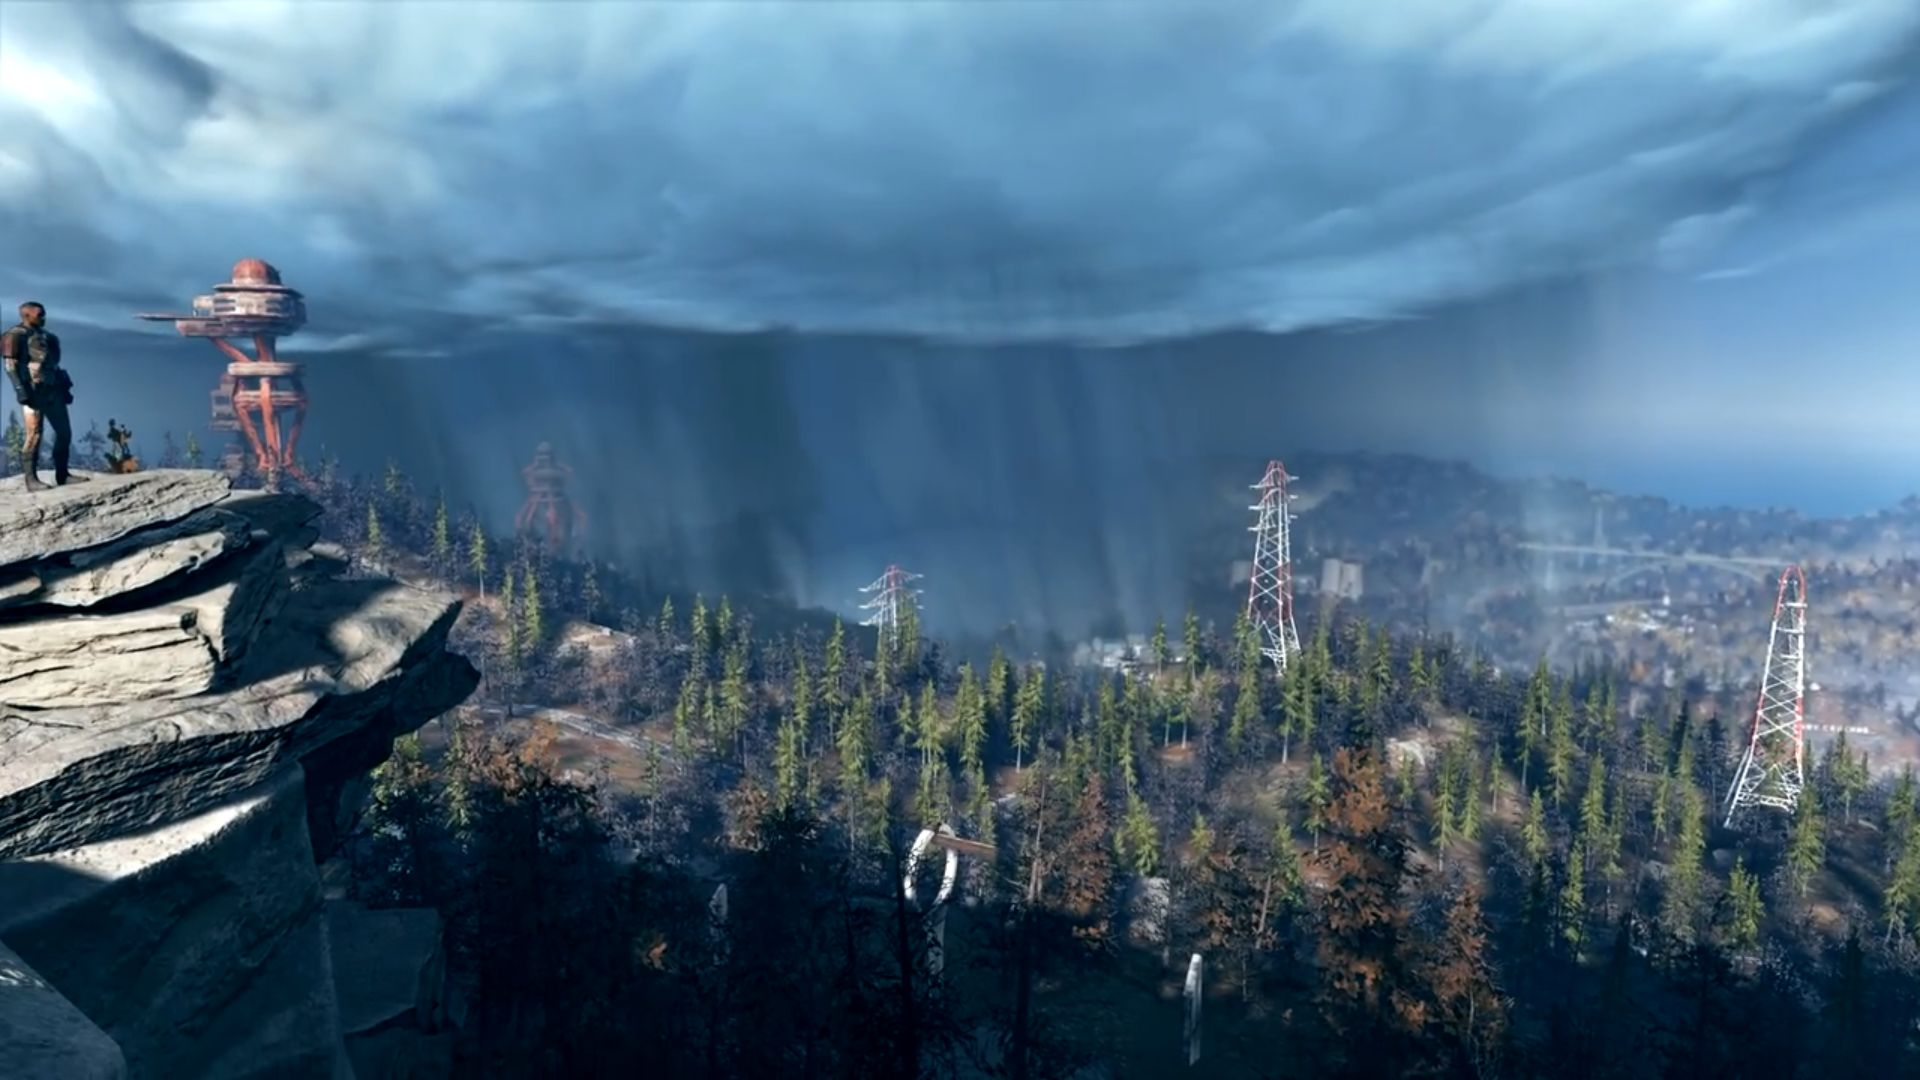 Fallout 76 Gameplay Trailer Screenshot Landschaft mit Strommasten